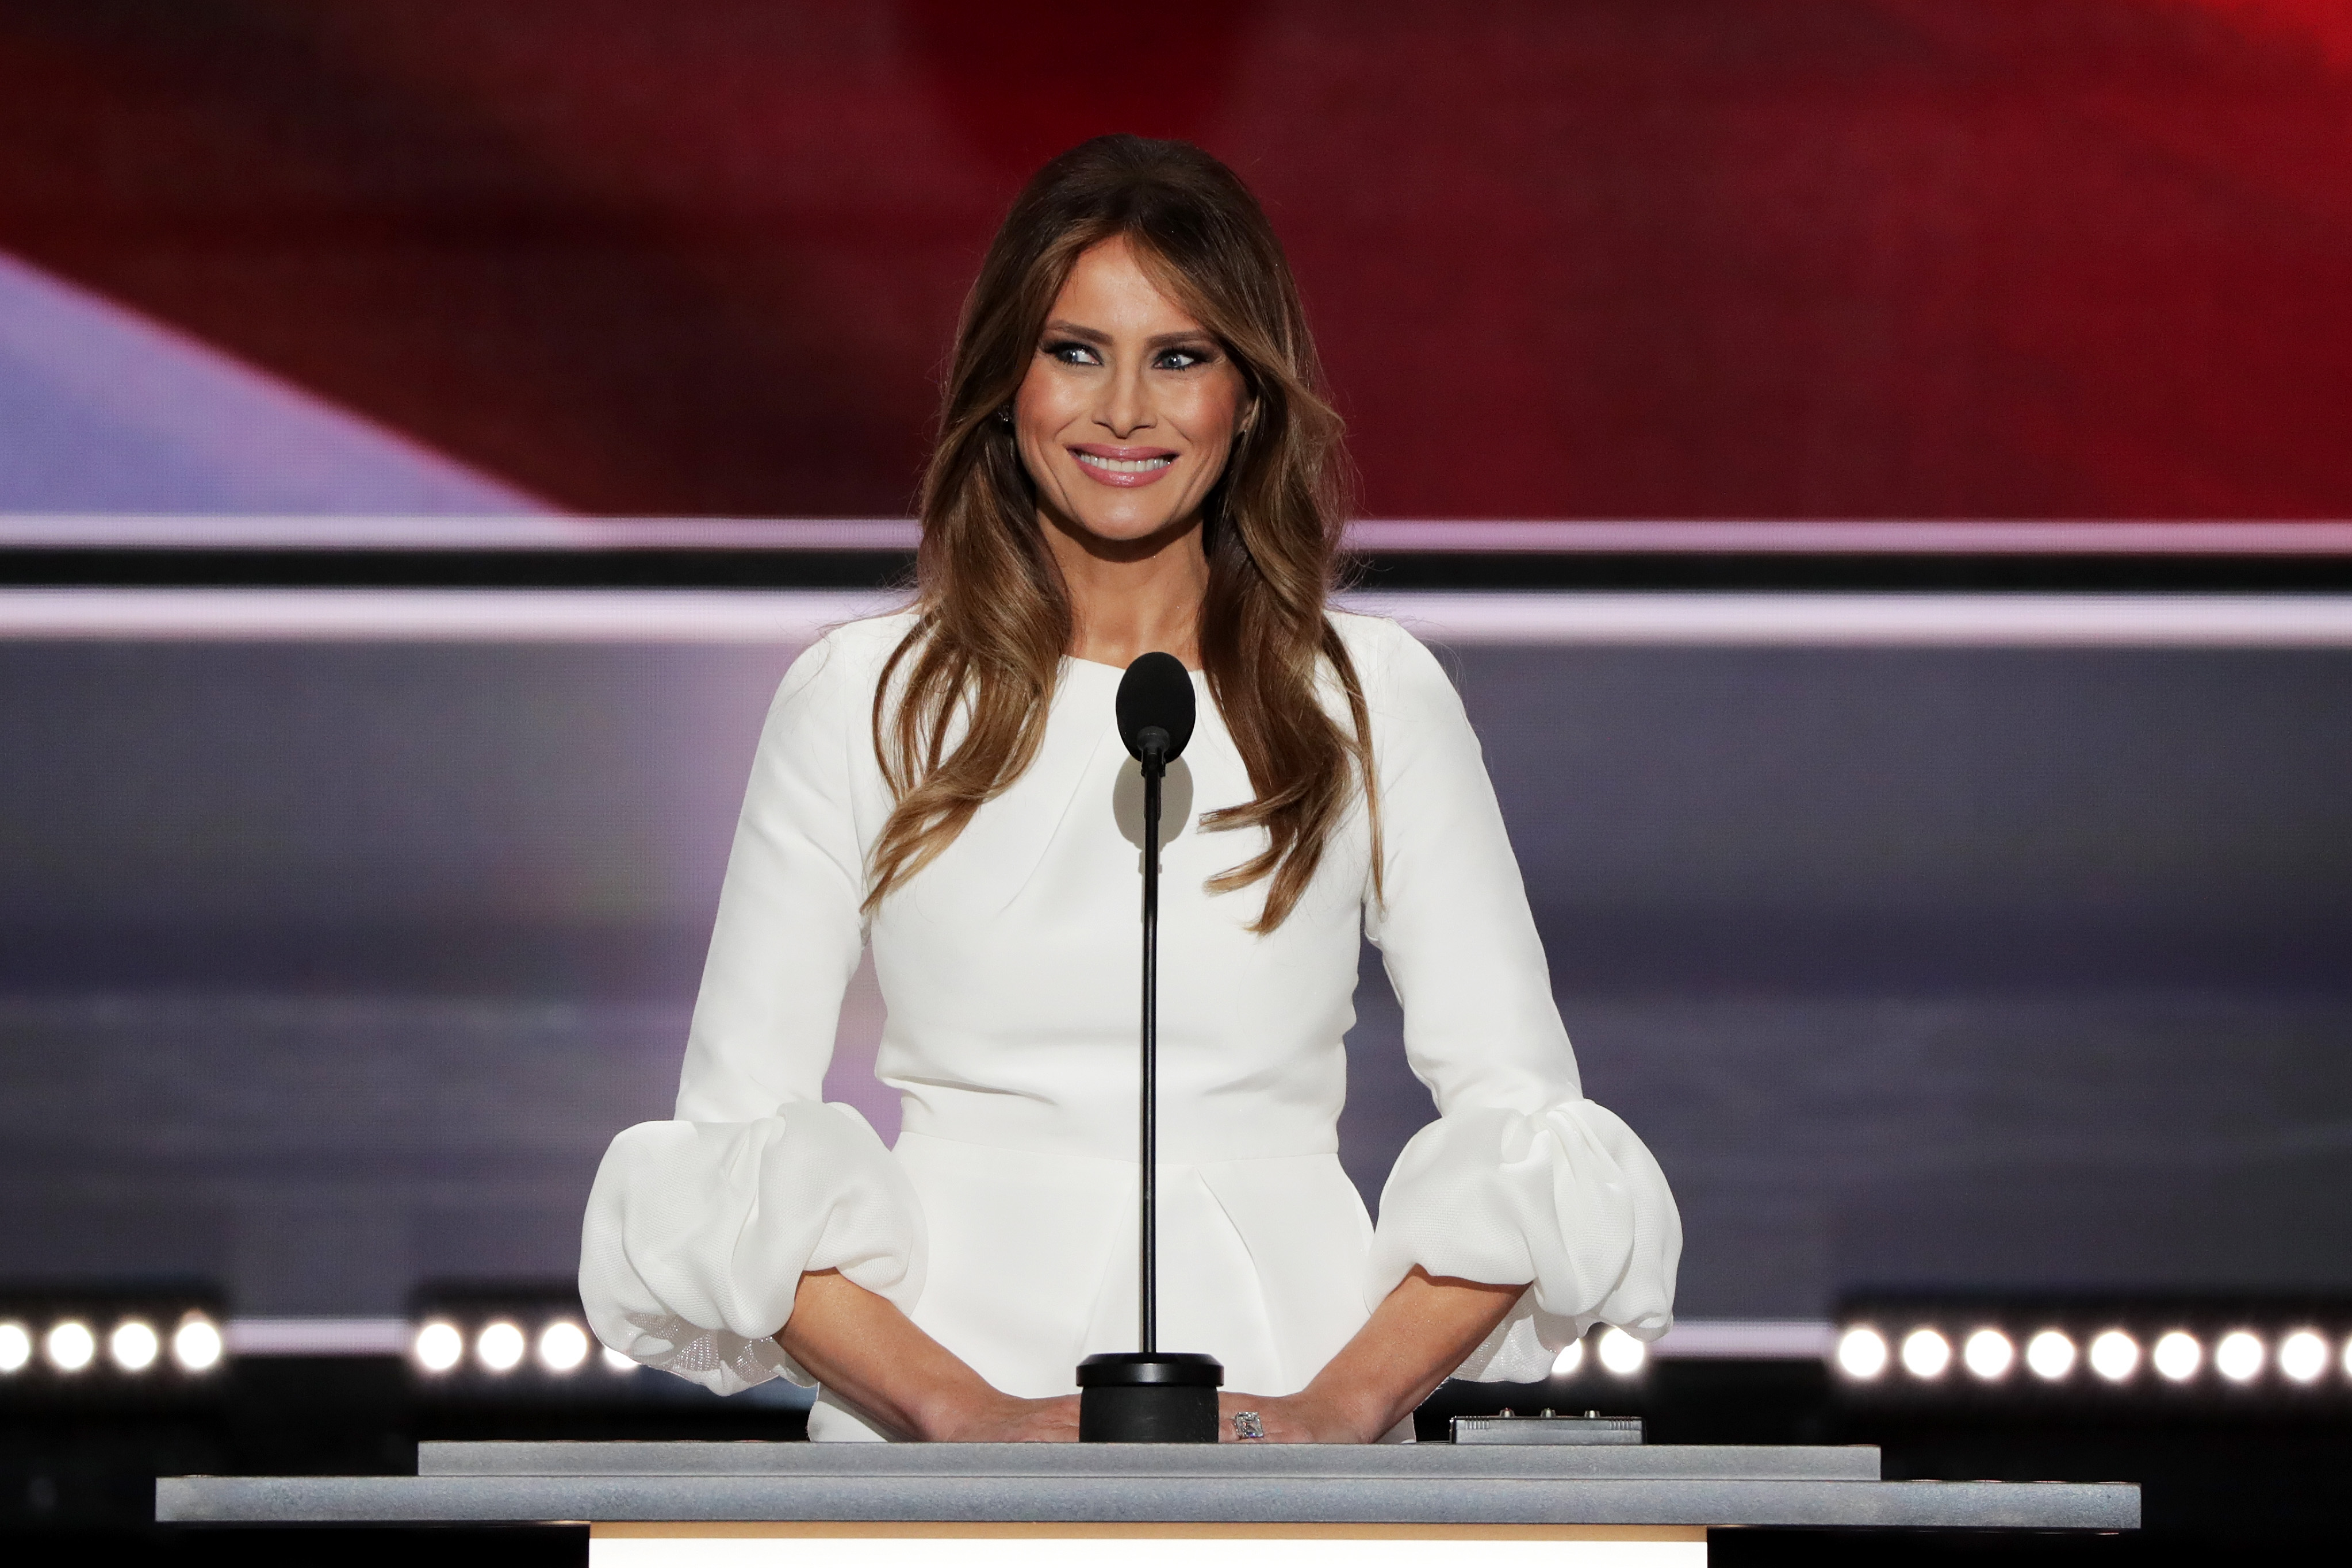 Melania Trump, wife of Presumptive Republican presidential nominee Donald Trump, delivers a speech on the first day of the Republican National Convention